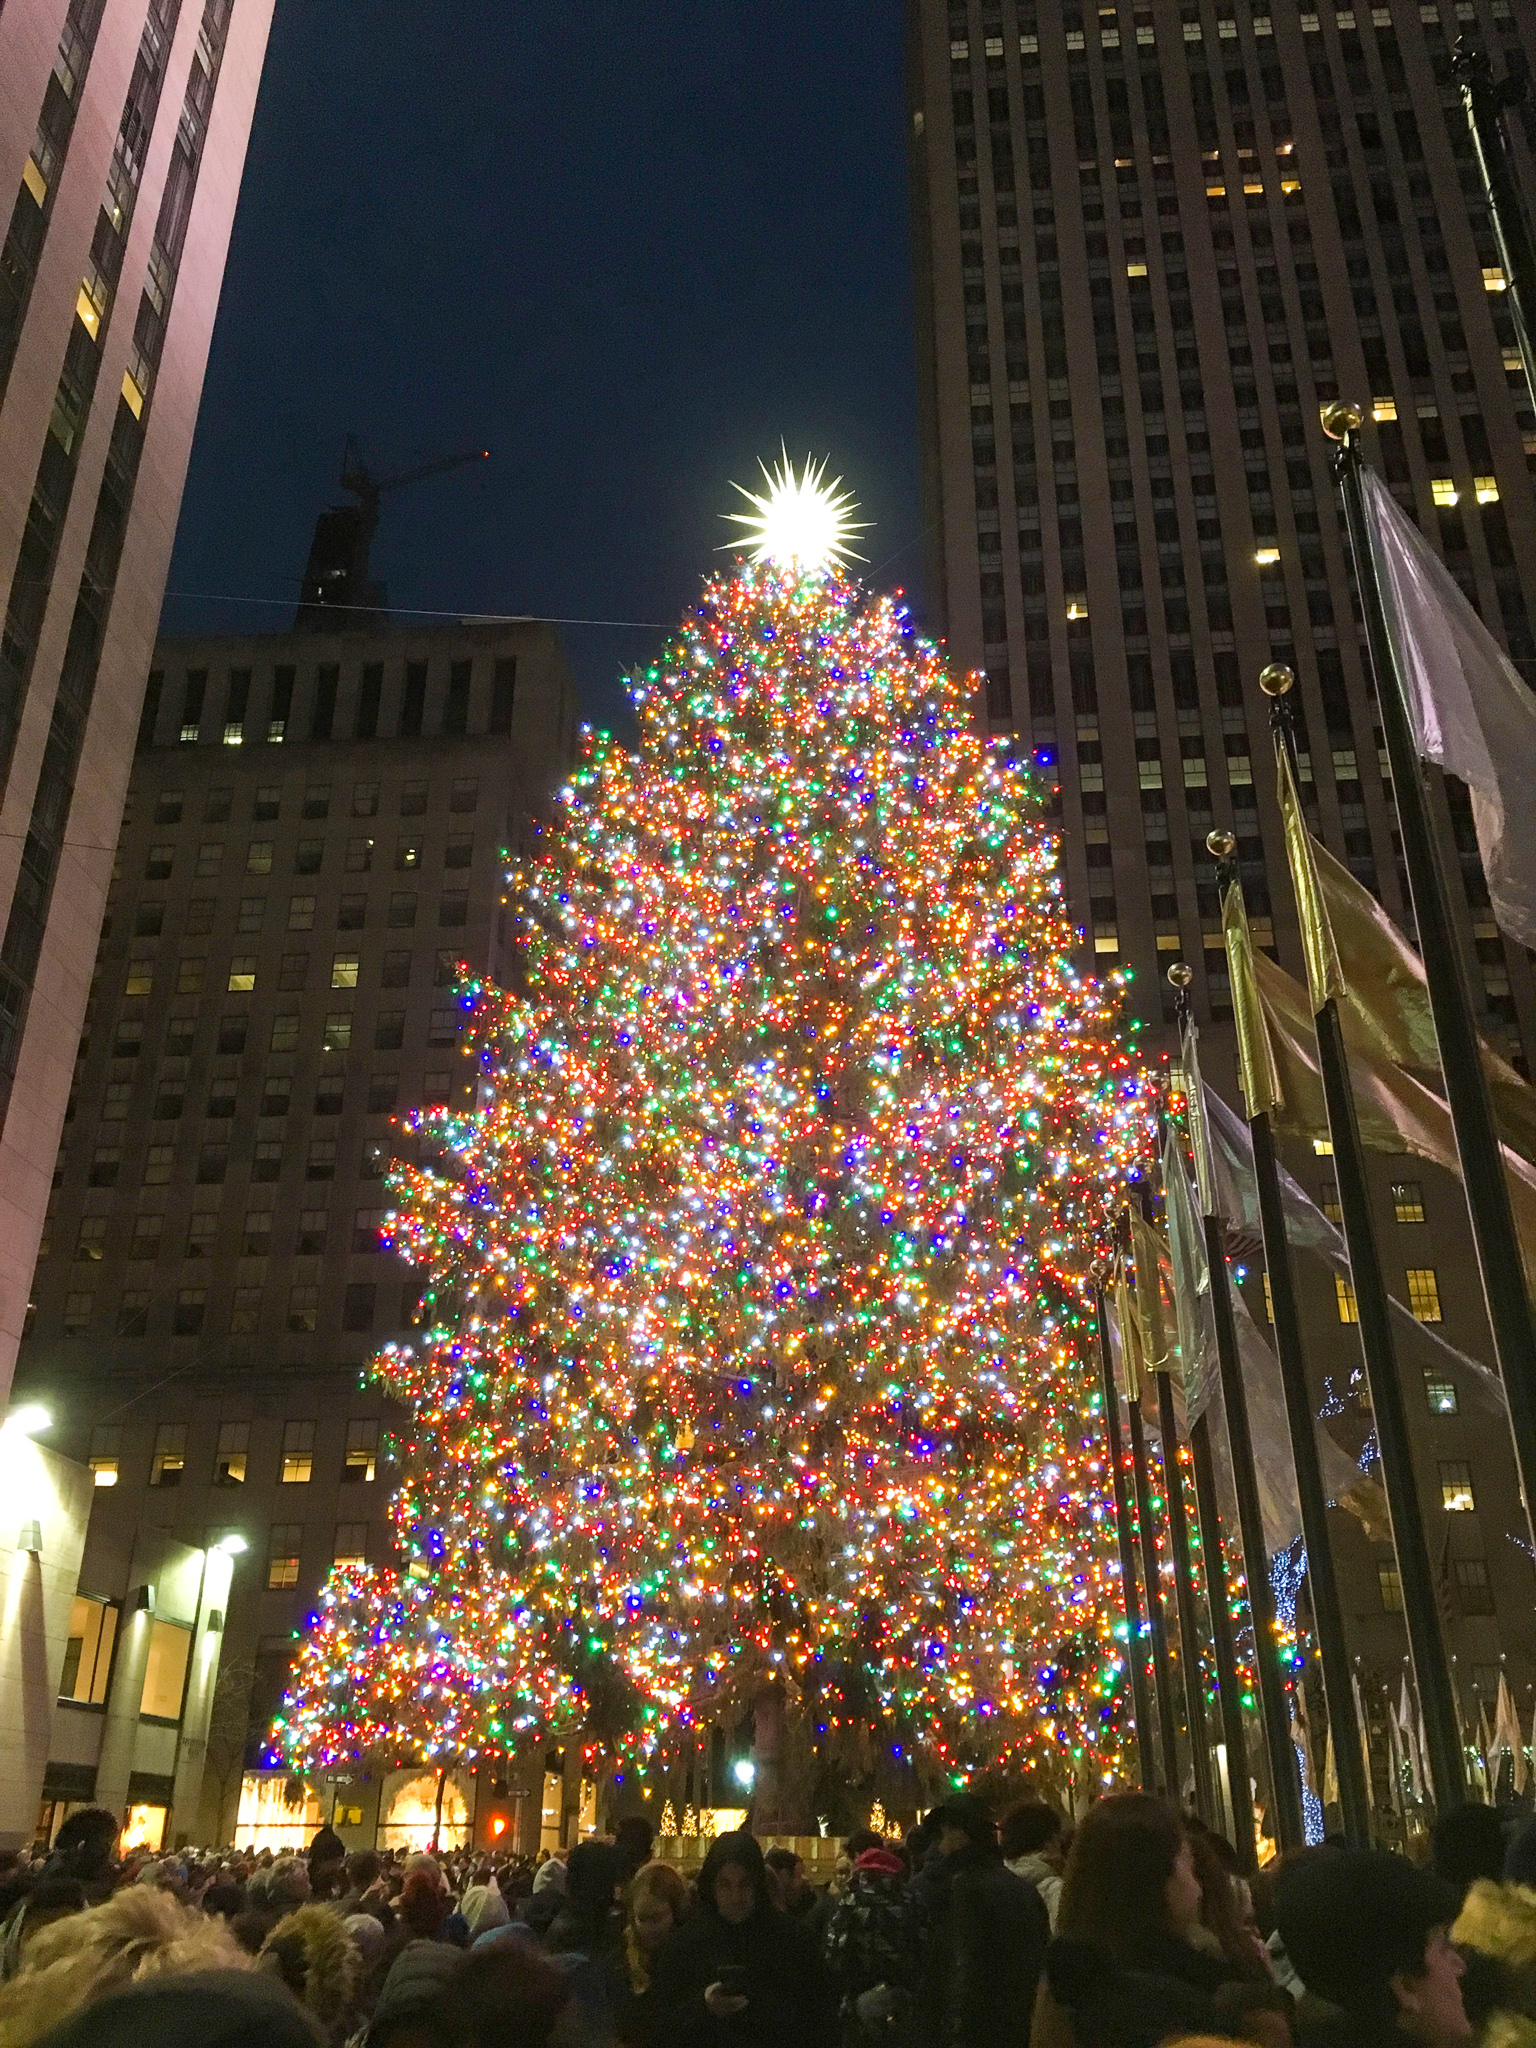 travel to new york city in december & see the tree